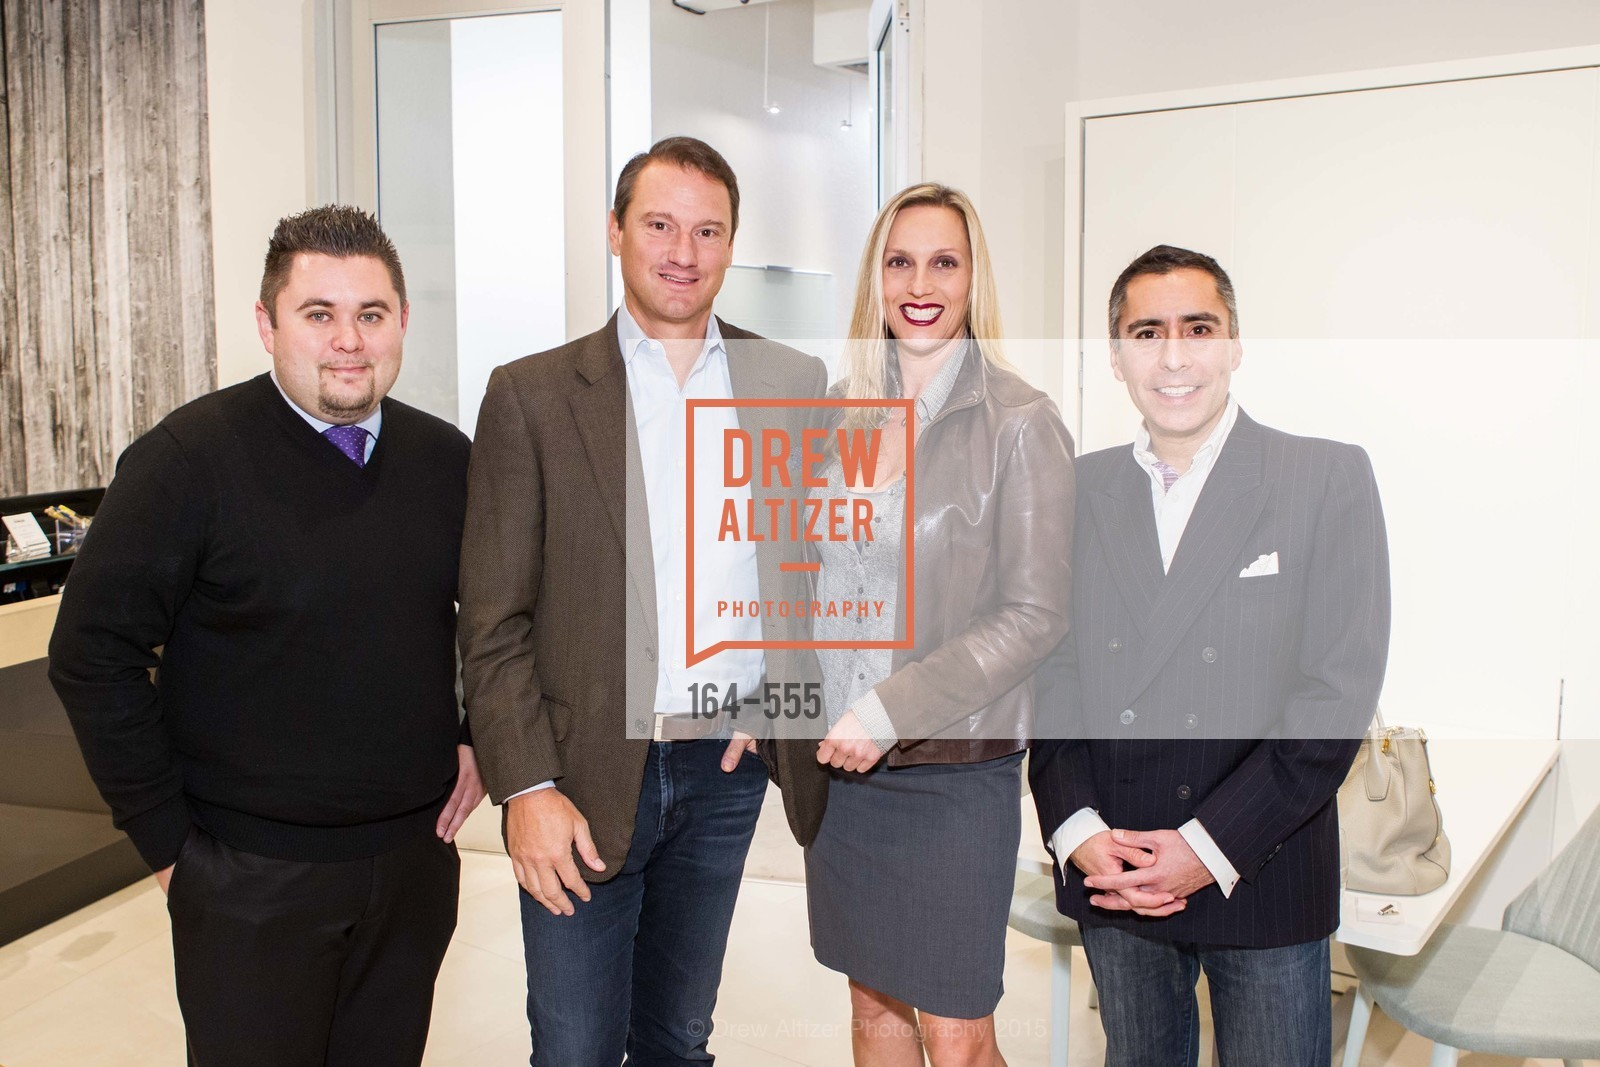 Noah Fierro, Joseph Lucier, Stacey Caen, Paul Ybarbo, SFC&G Real Estate Survey Reveal, Resource Furniture, November 19th, 2015,Drew Altizer, Drew Altizer Photography, full-service agency, private events, San Francisco photographer, photographer california